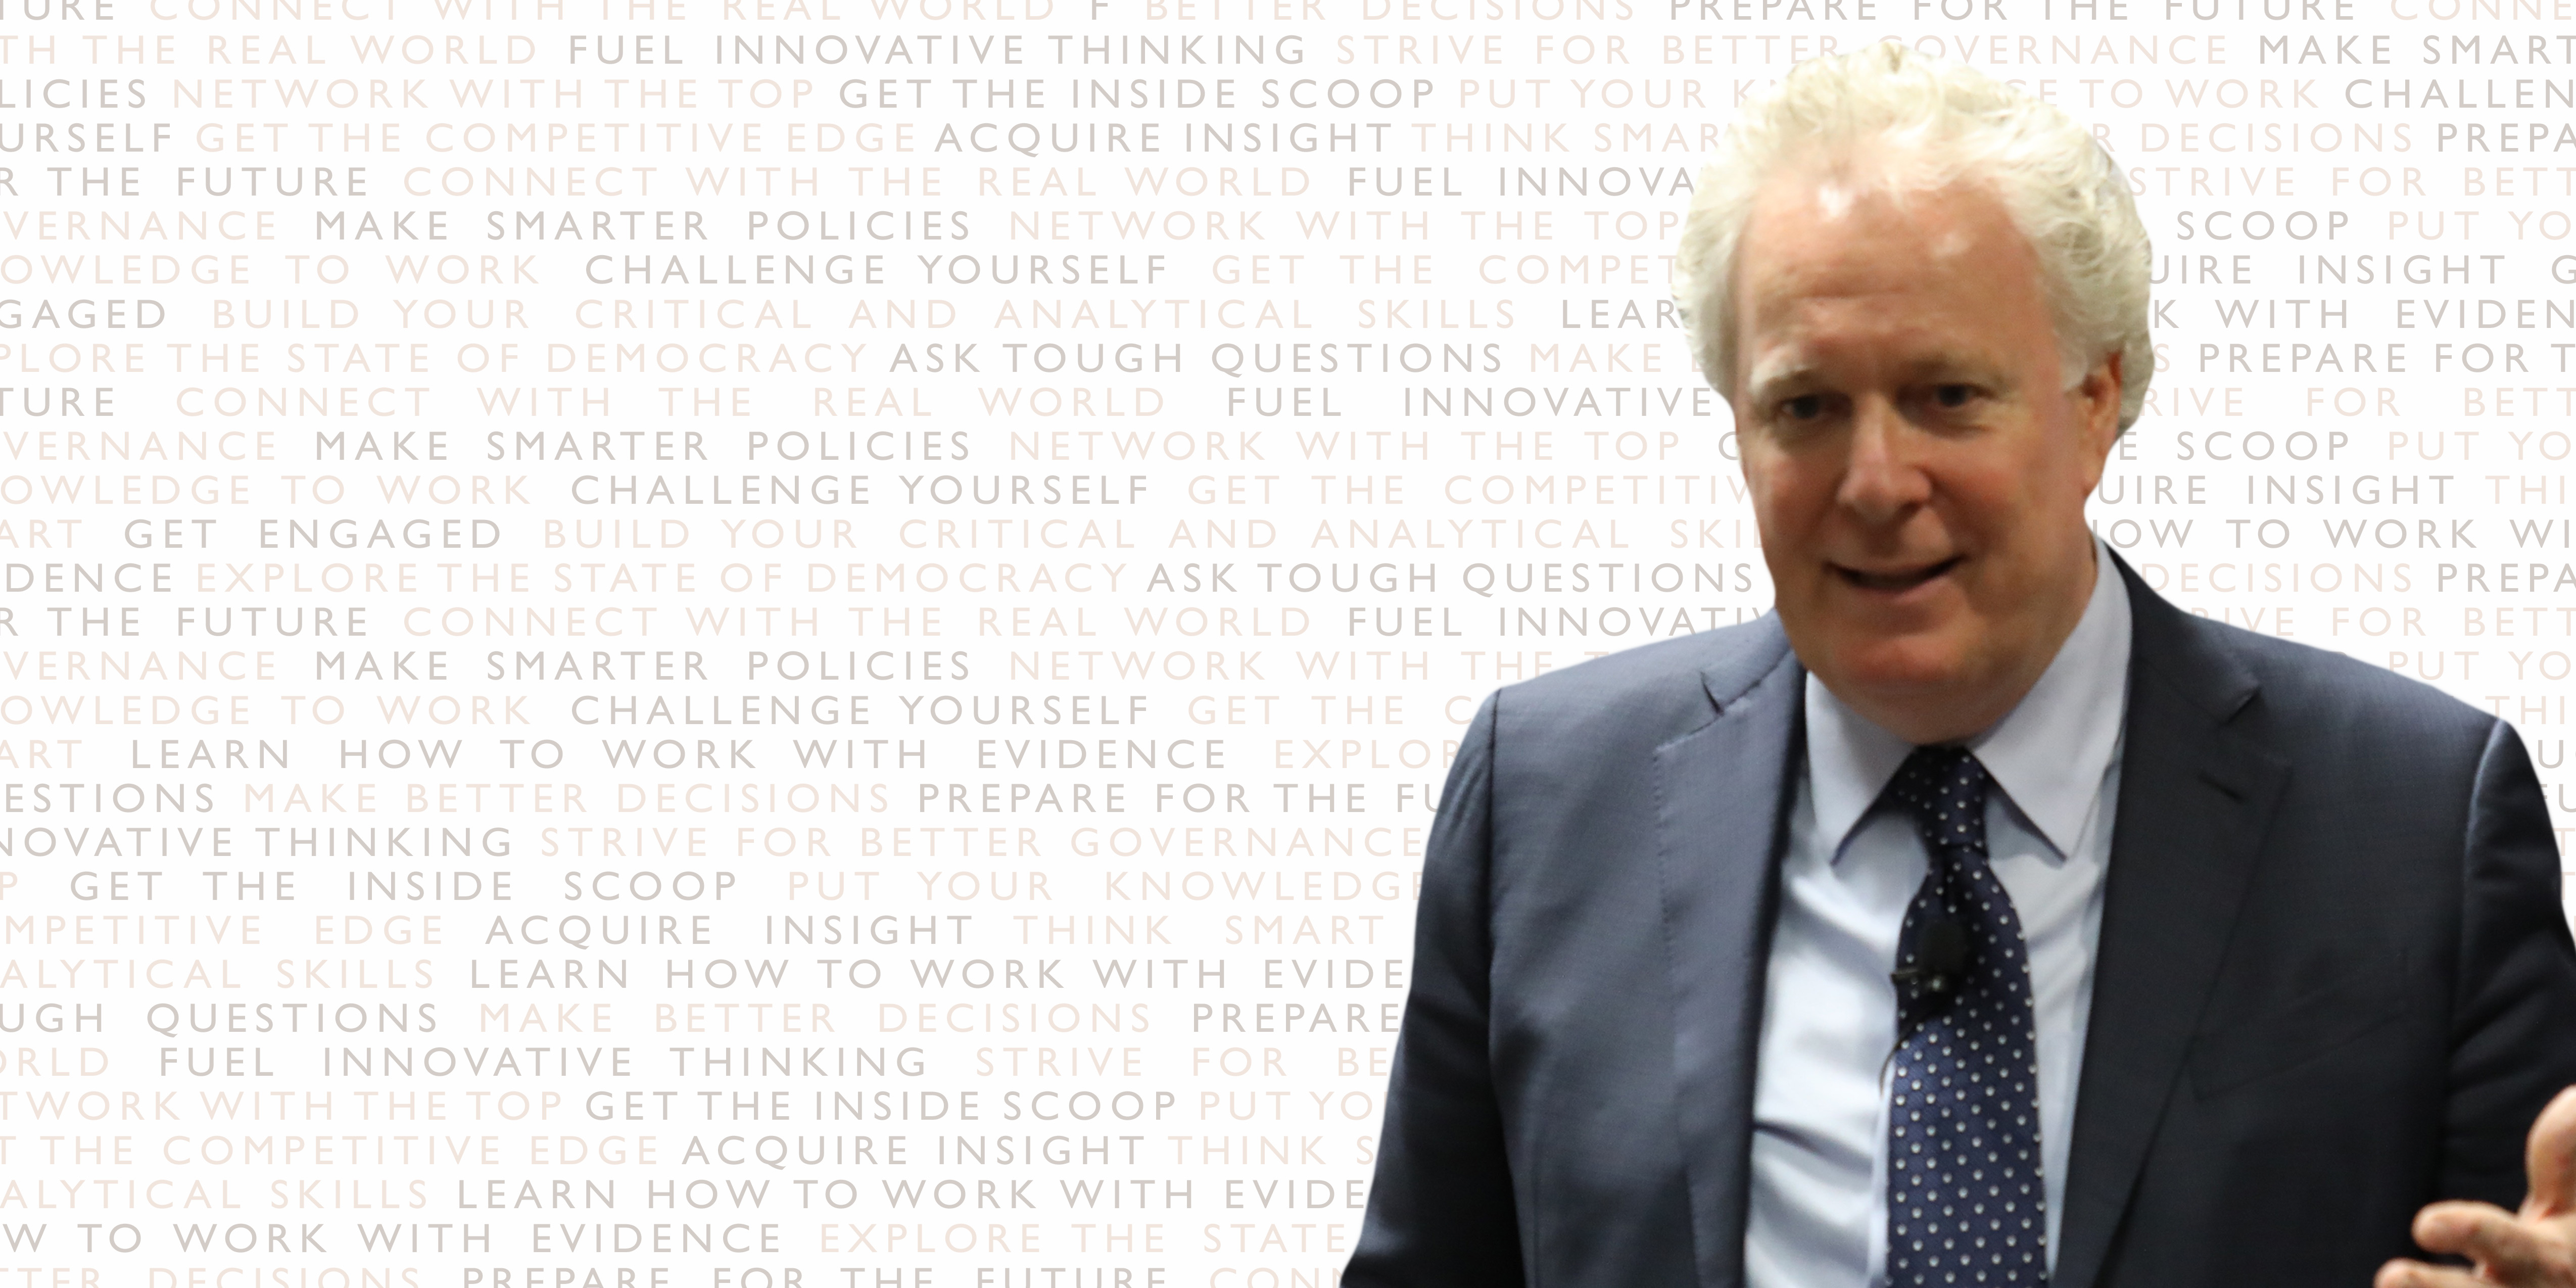 Honourable Jean Charest